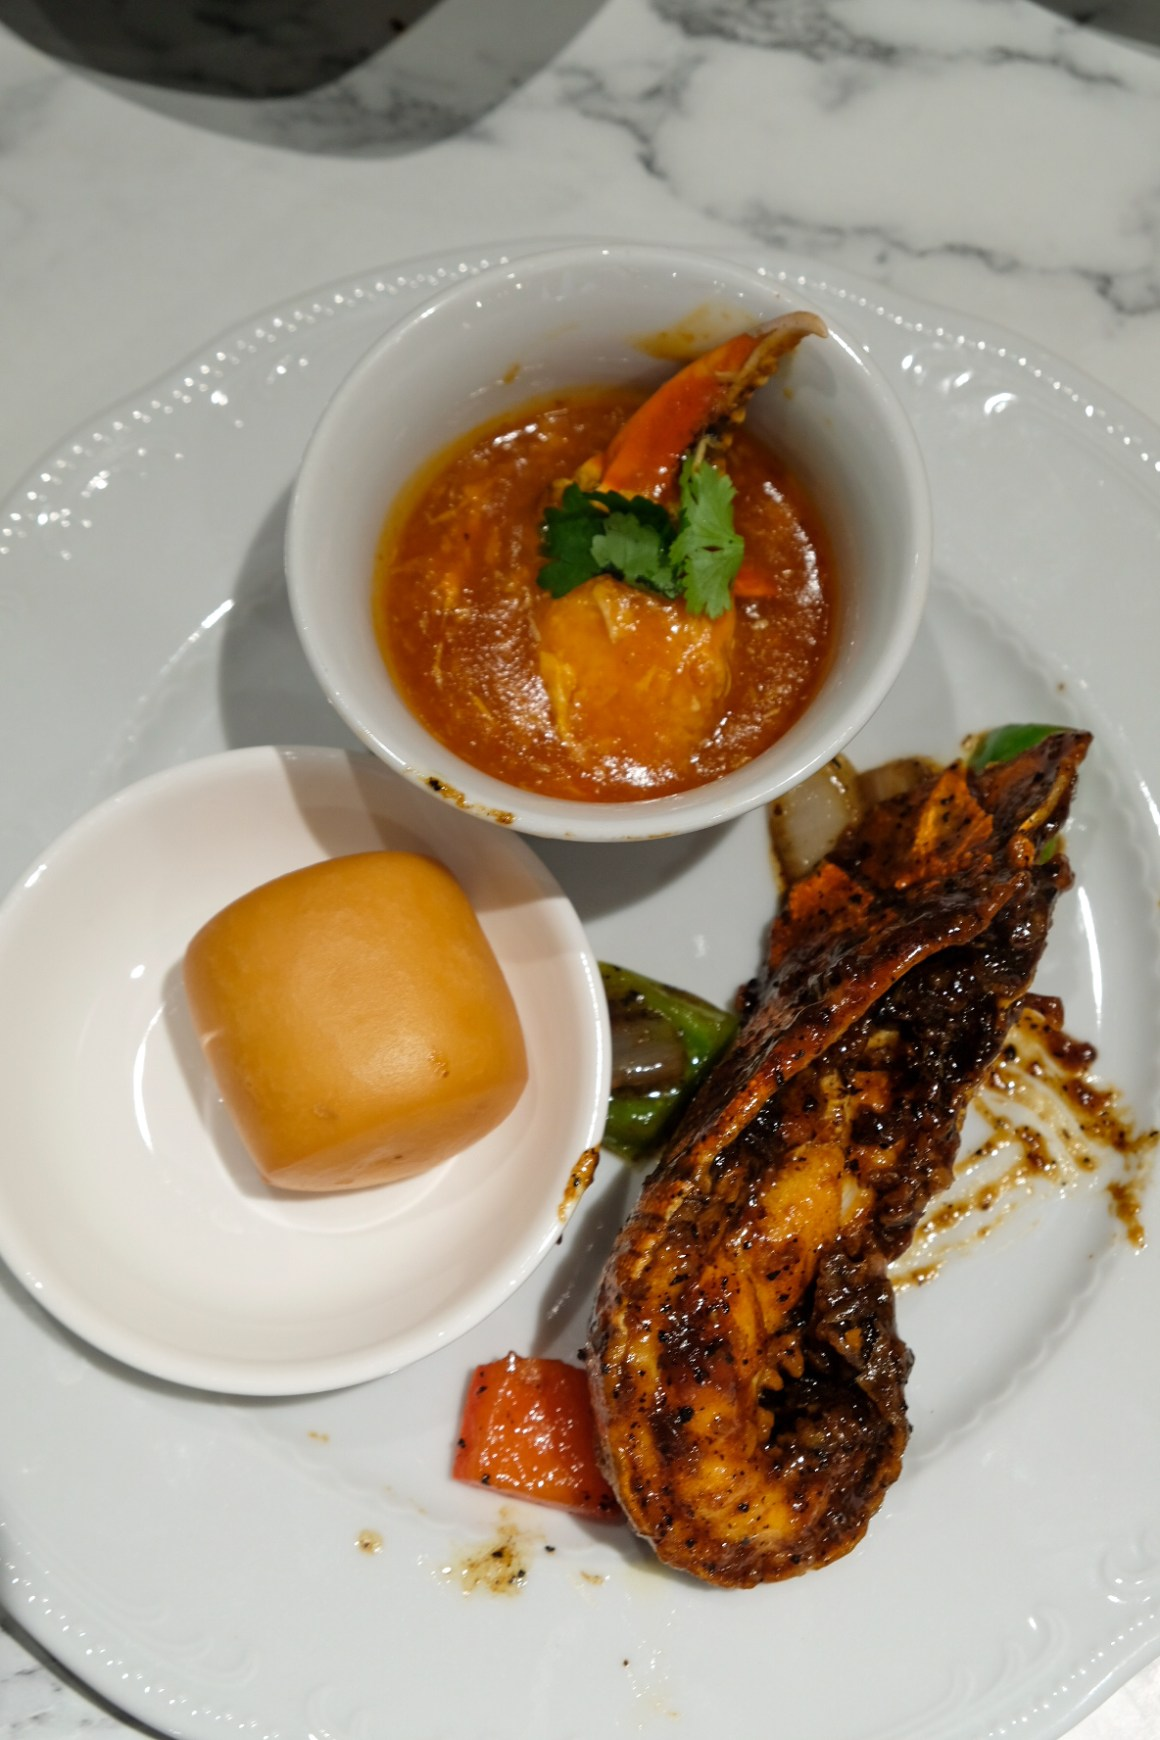 Asian Street Food Weekend A La Carte Buffet At Spice Brasserie - Hot Favourites